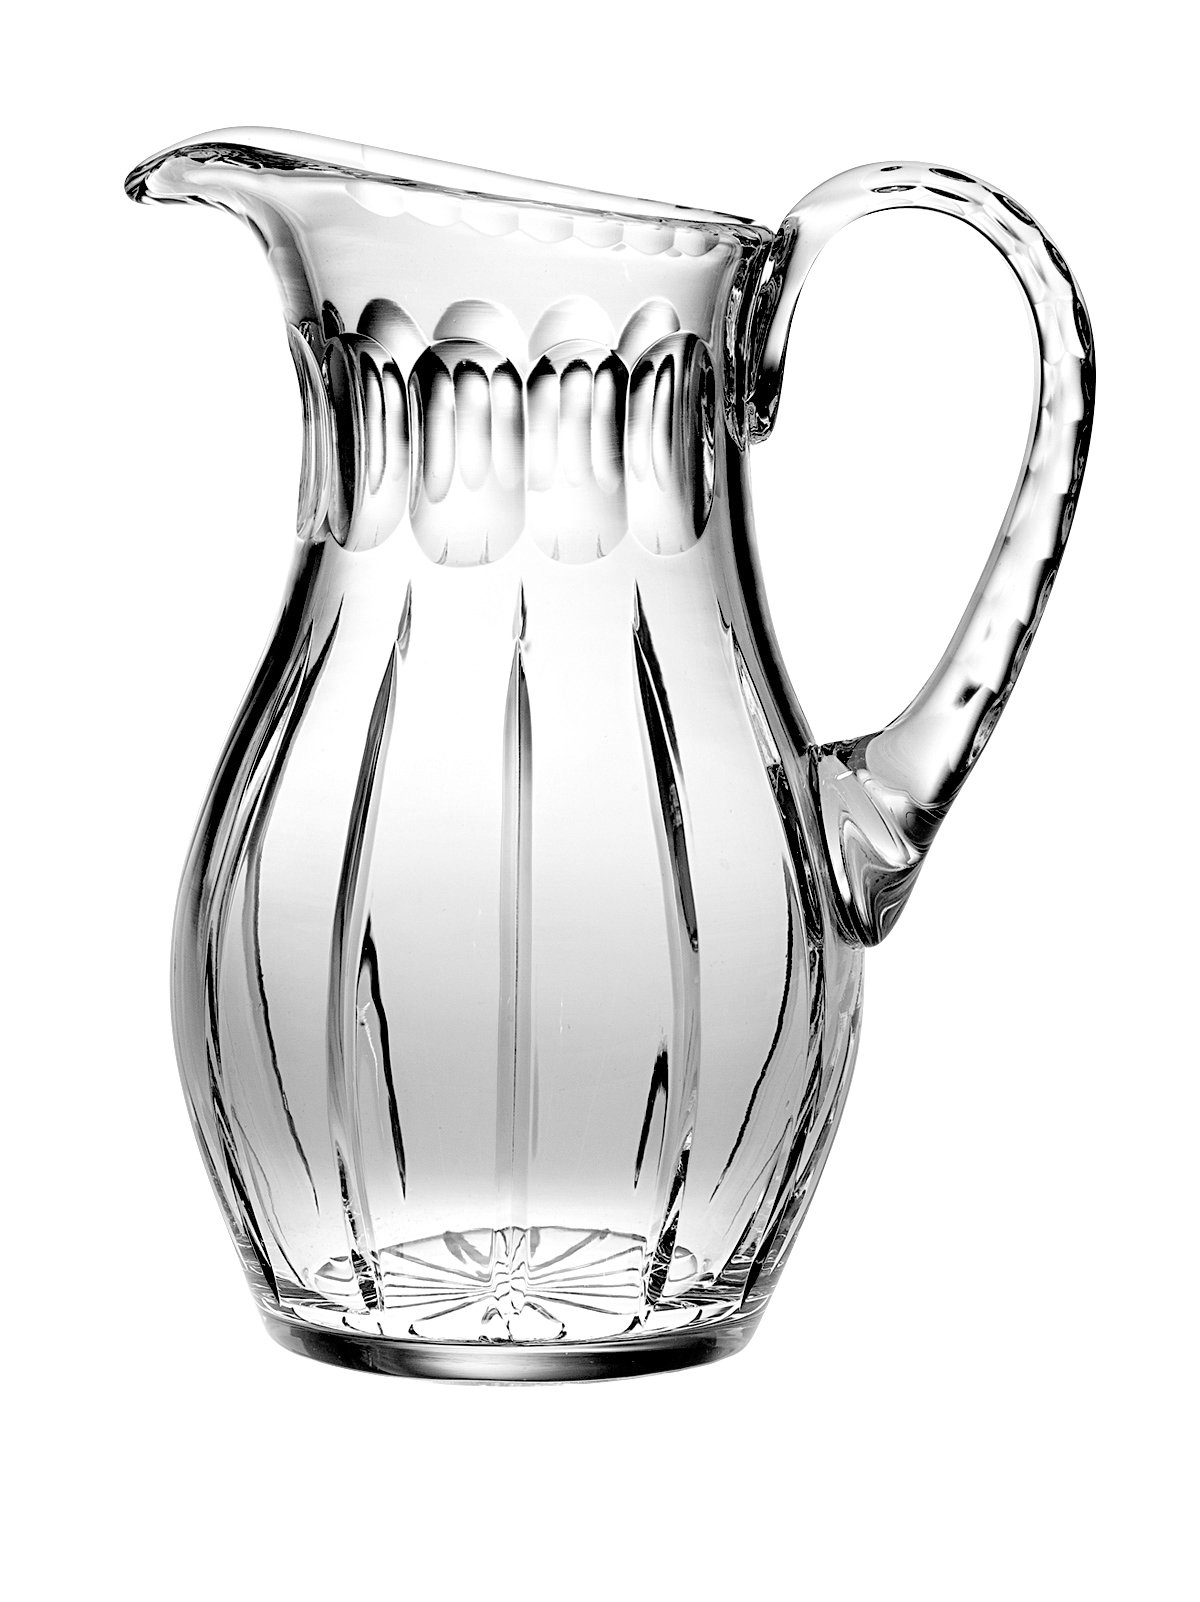 Barski - Hand Cut - Mouth Blown - Crystal Pitcher - 52oz. - 10.25'' height - Made in Europe